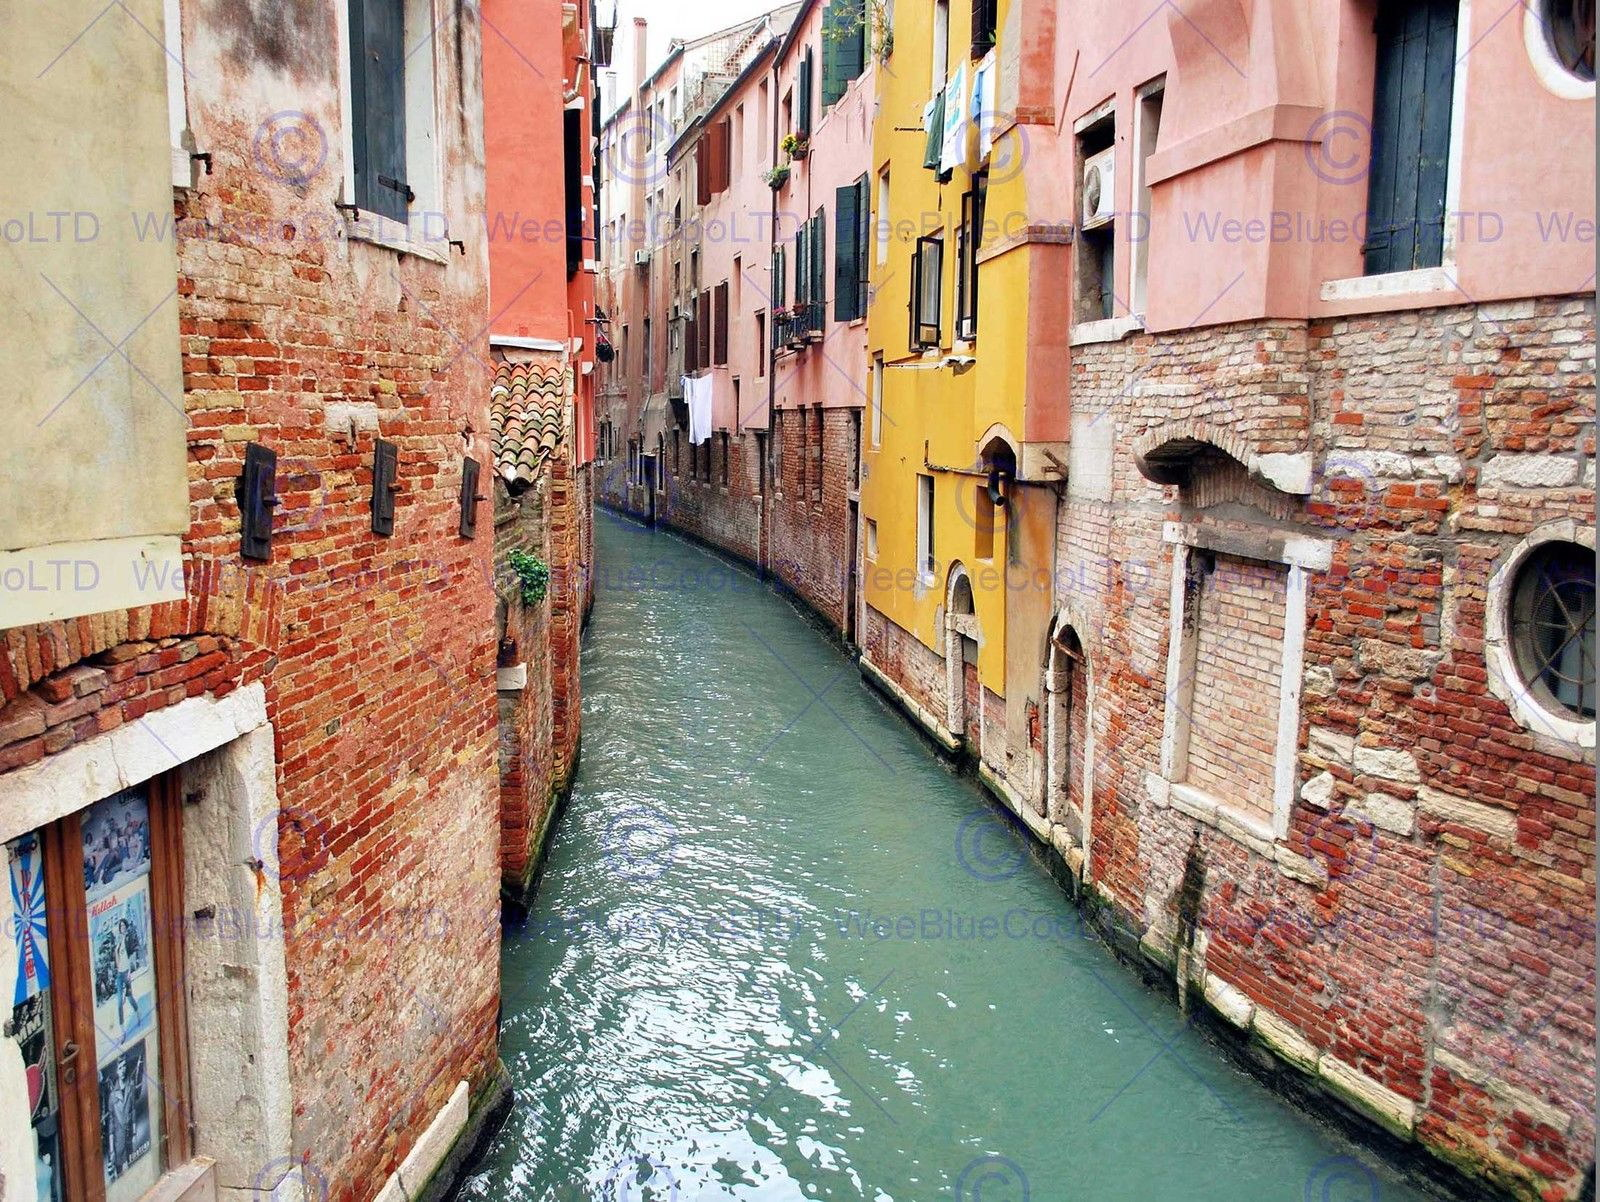 86860 CANAL VENICE BUILDINGS Decor WALL PRINT POSTER CA